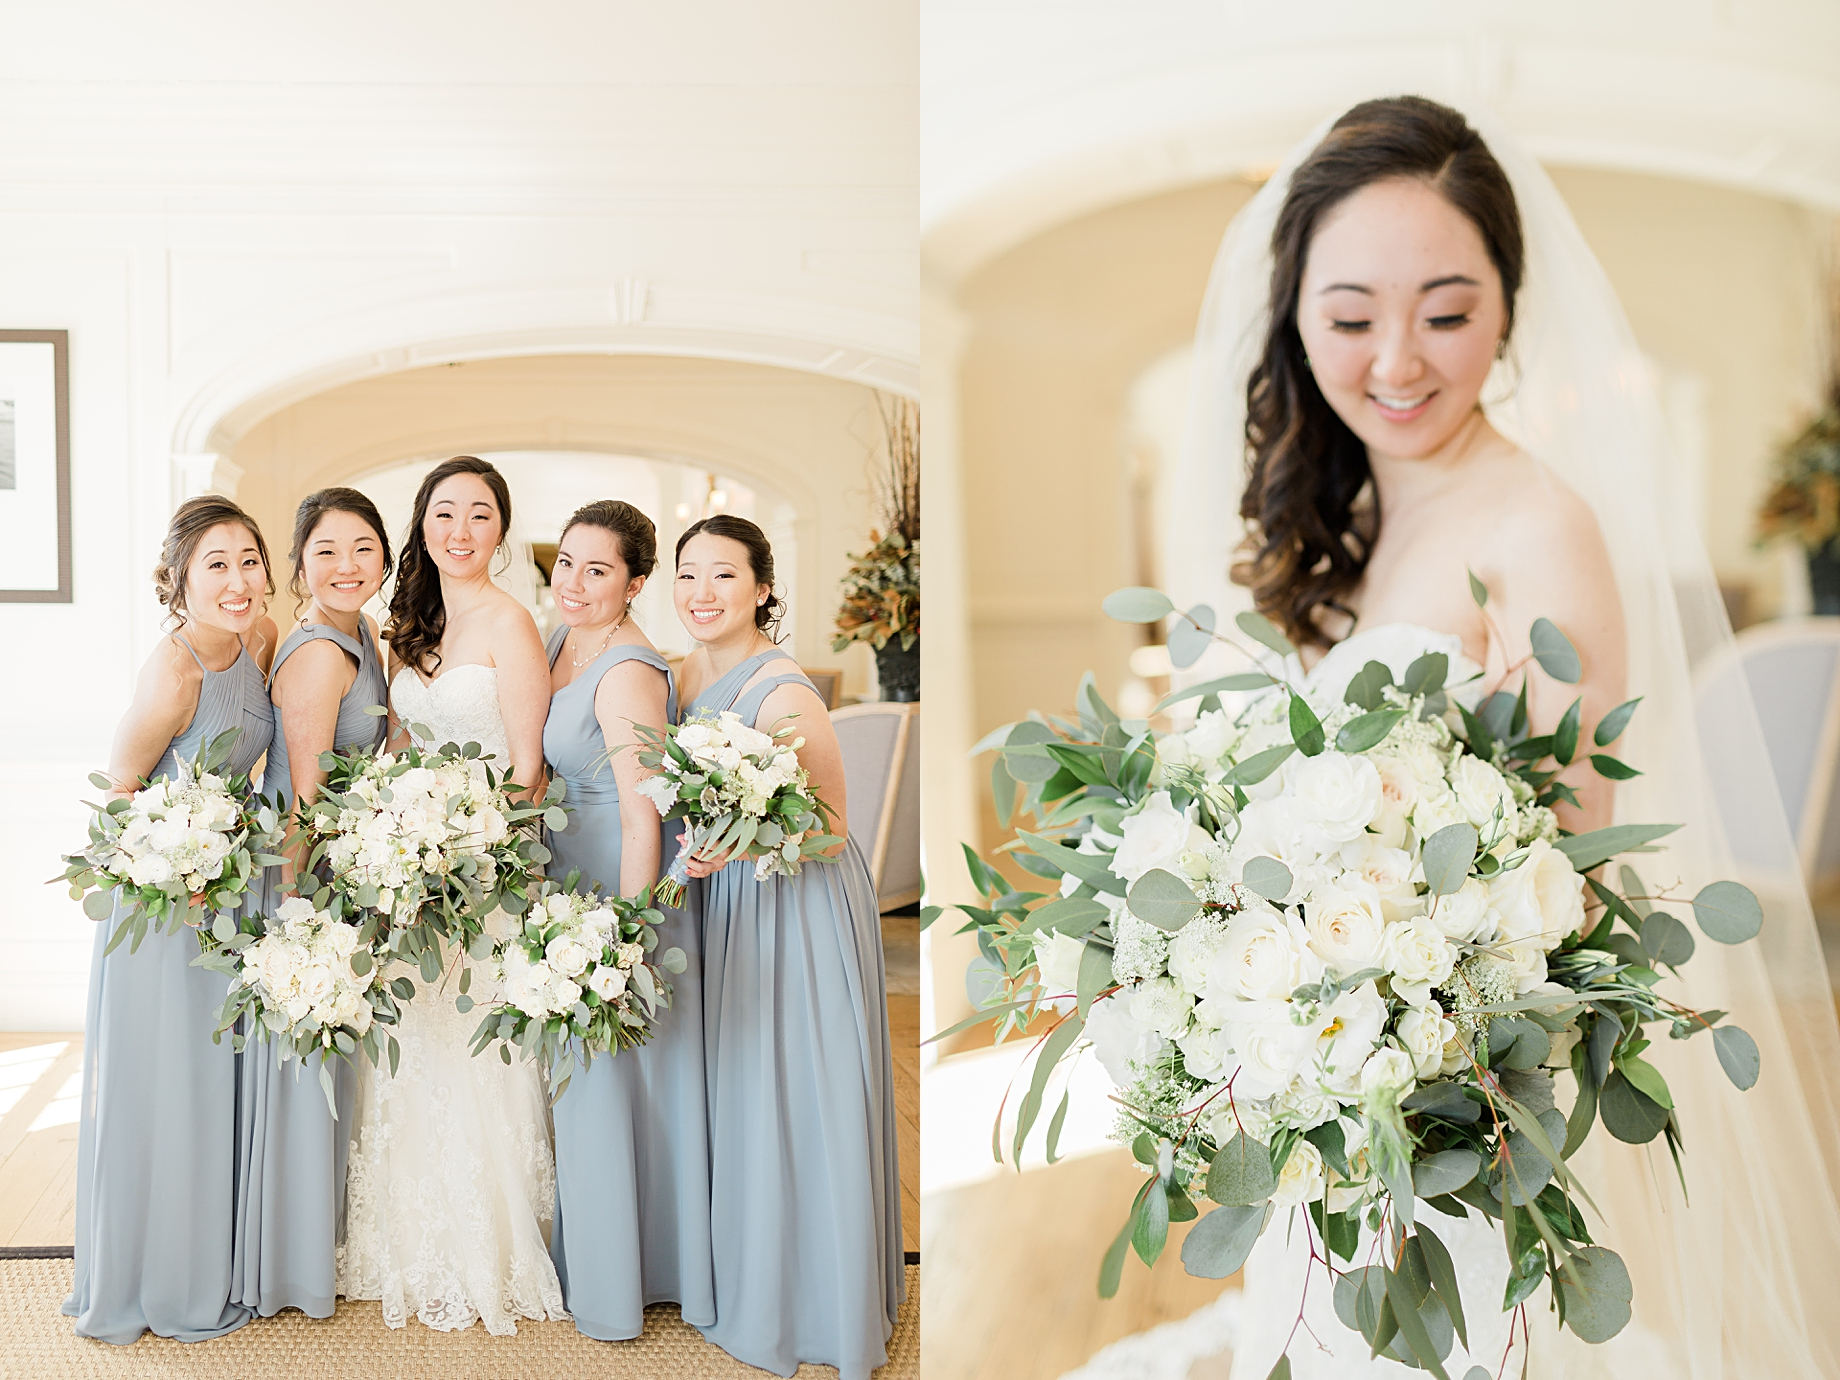 Dusty Blue and Ivory Wedding at French Creek Golf Club